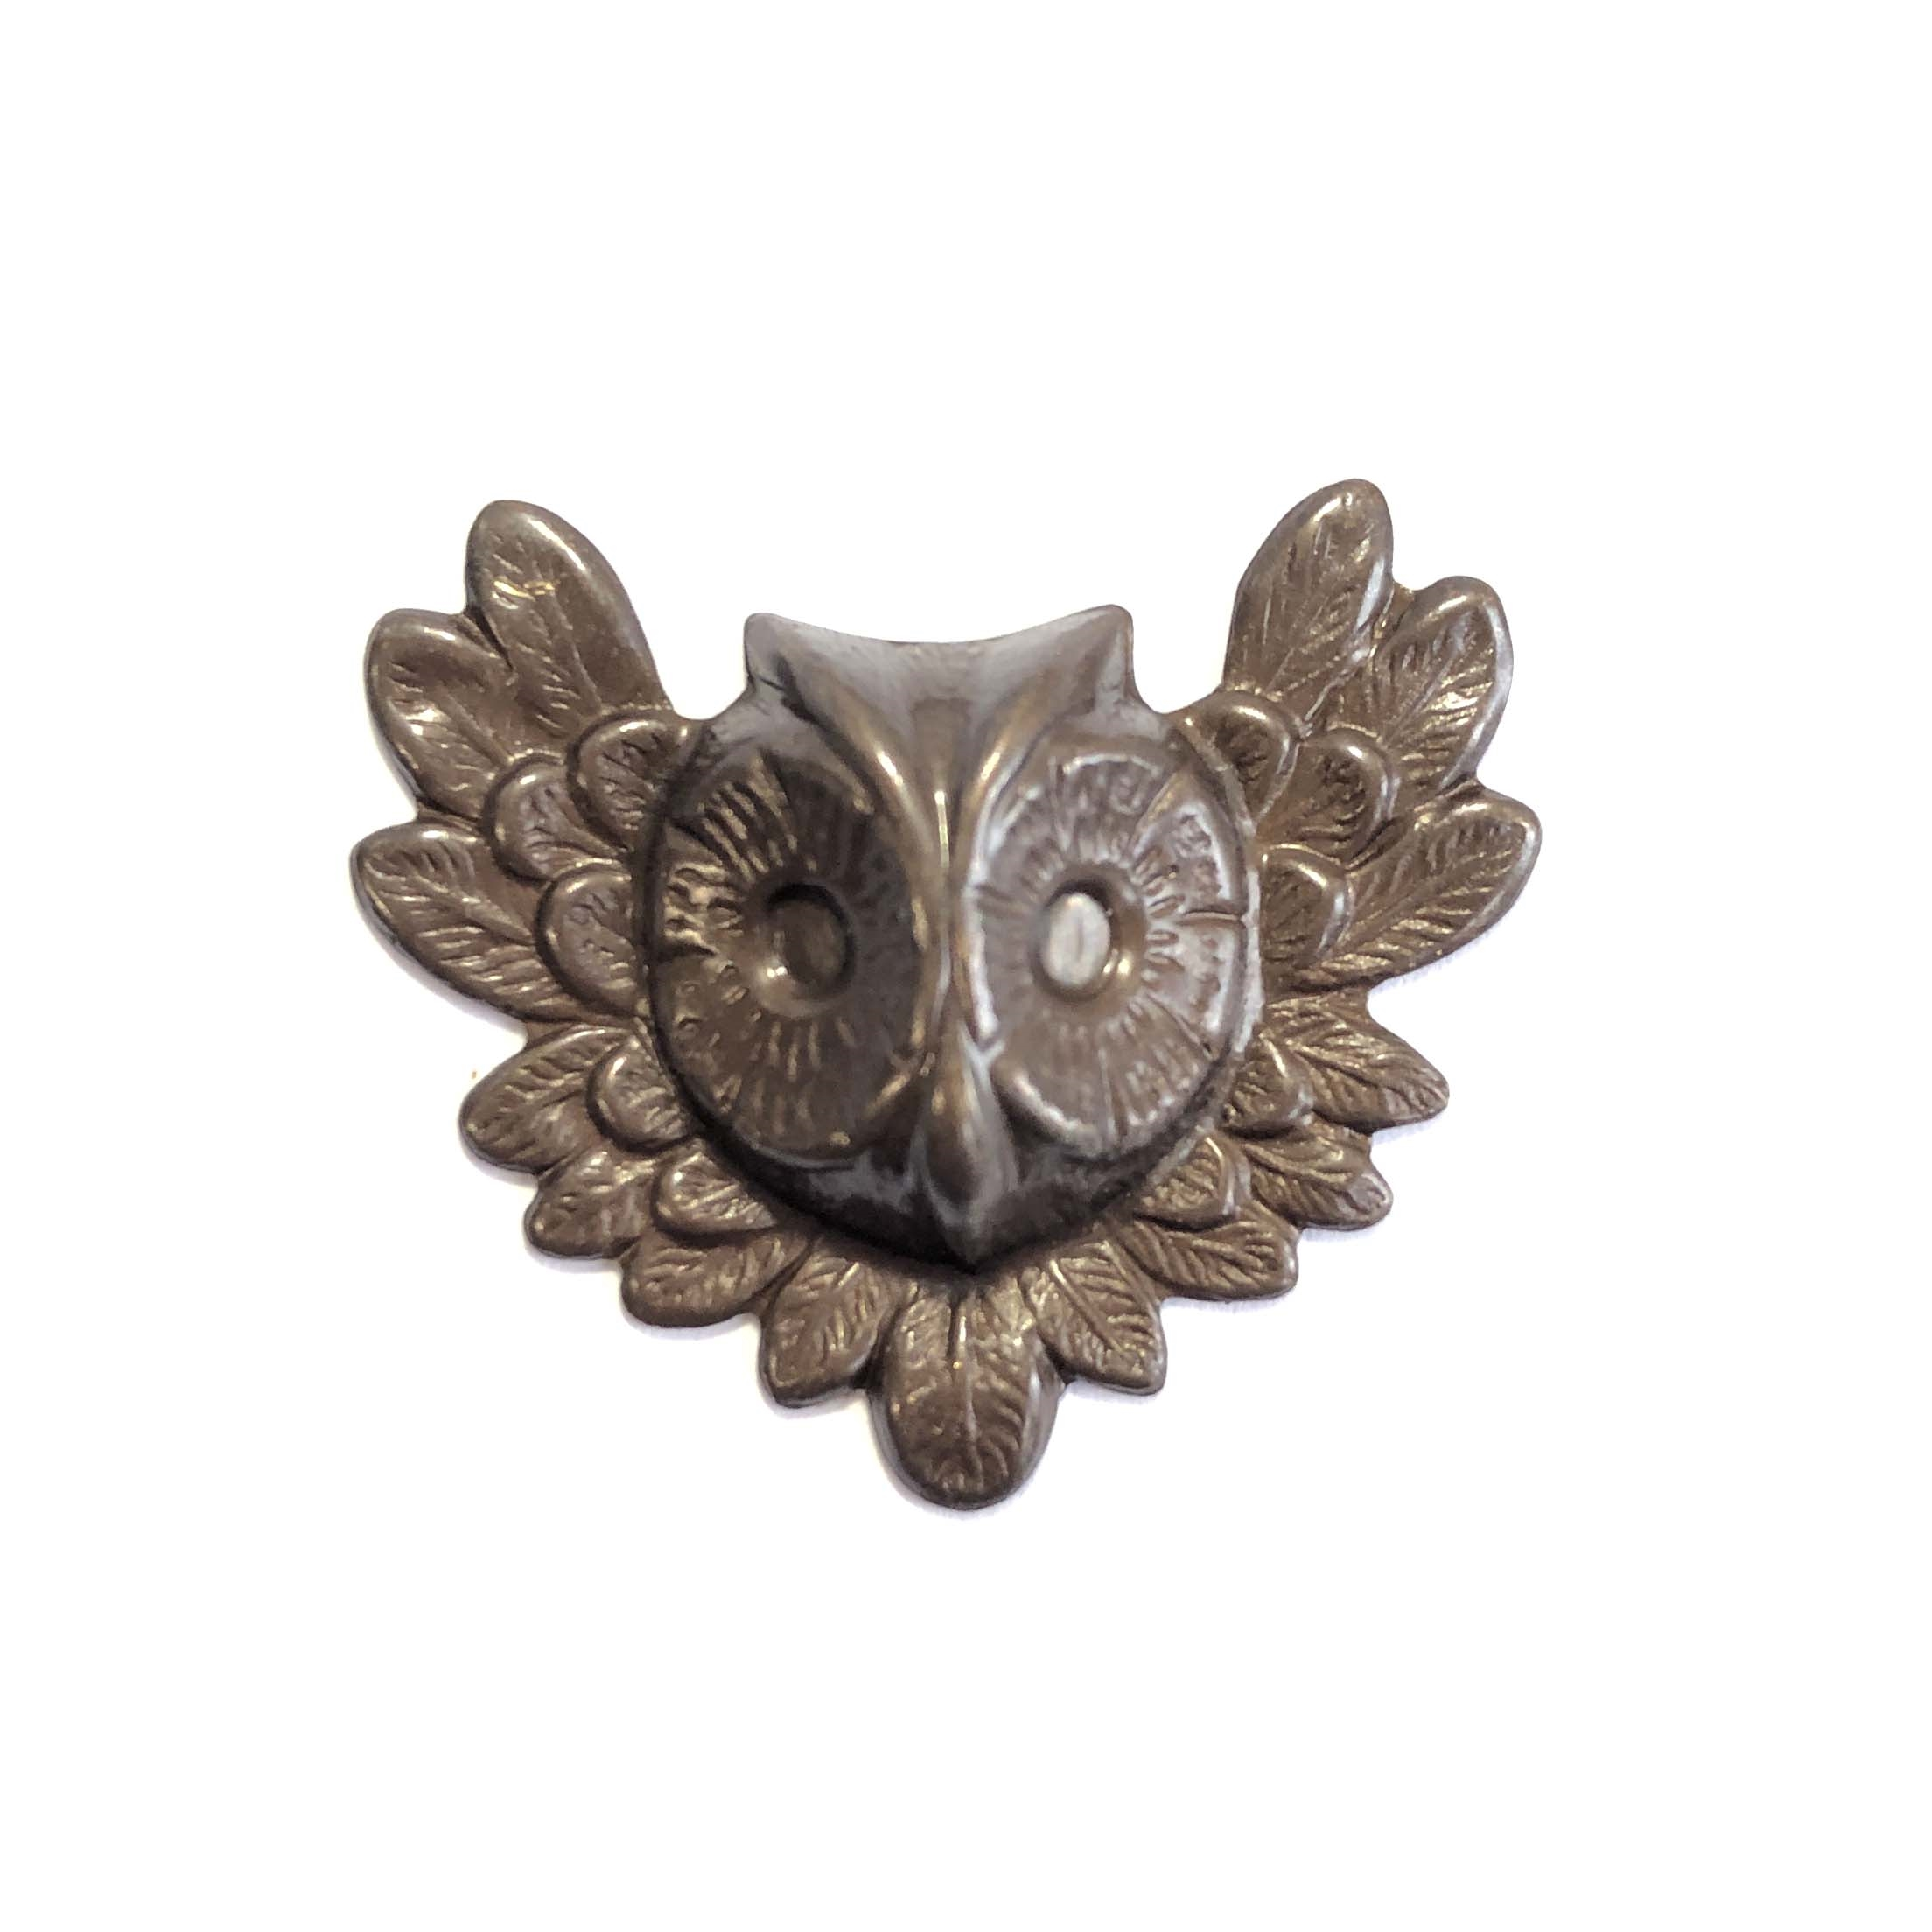 brass owl head, owl stampings, choxie, 0137, chocolate brass, B'sue Boutiques, nickel free, US made, jewelry making, jewelry supplies, brass jewelry parts, hollow back stampings, mold making, vintage supplies, vintage jewelry parts